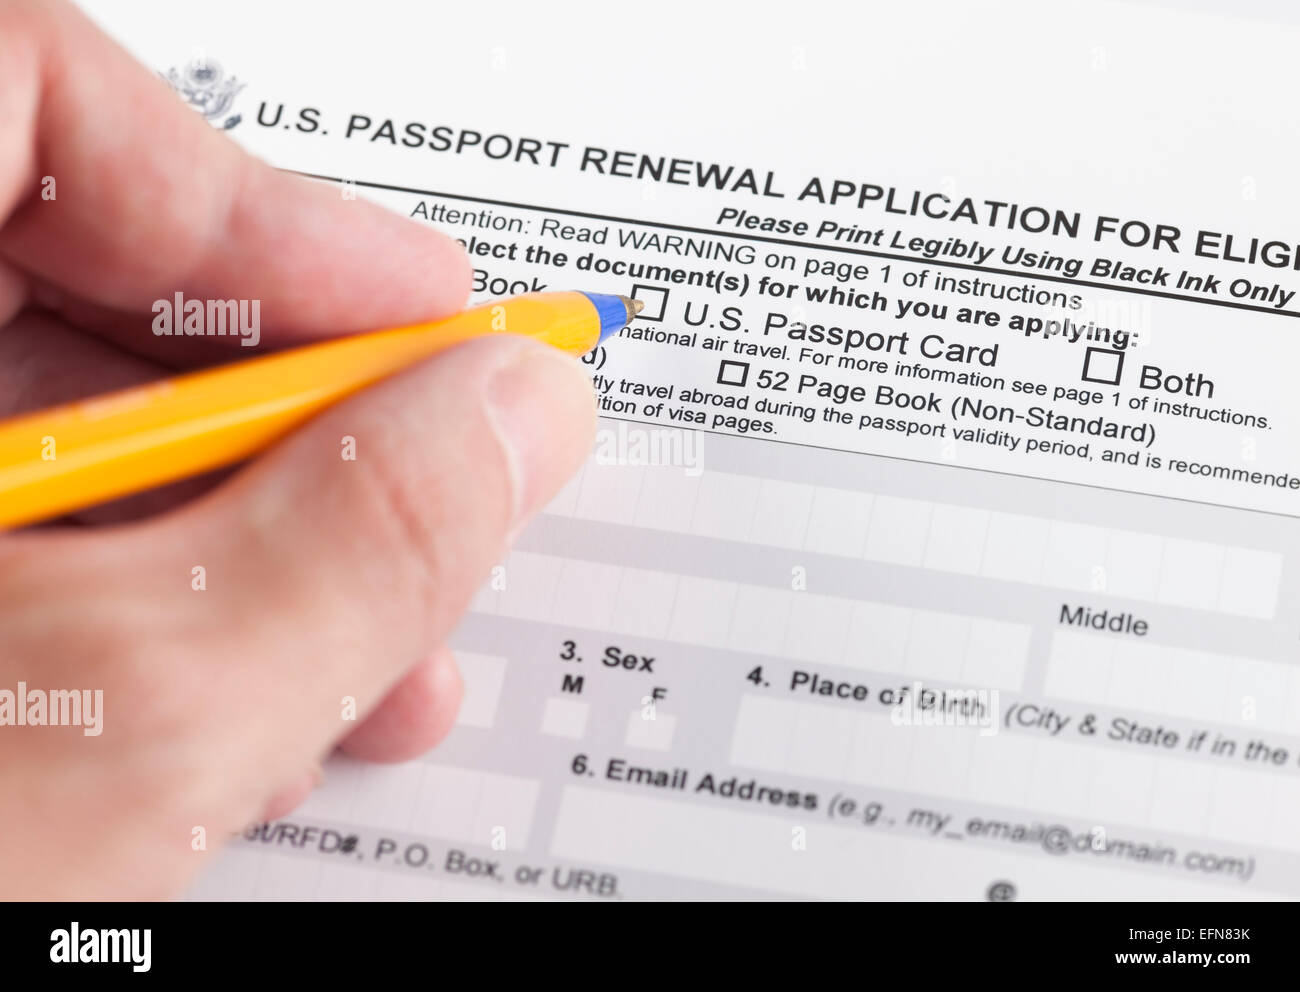 U.S. passport renewal application for eligible individuals and human hand with ballpoint pen. - Stock Image